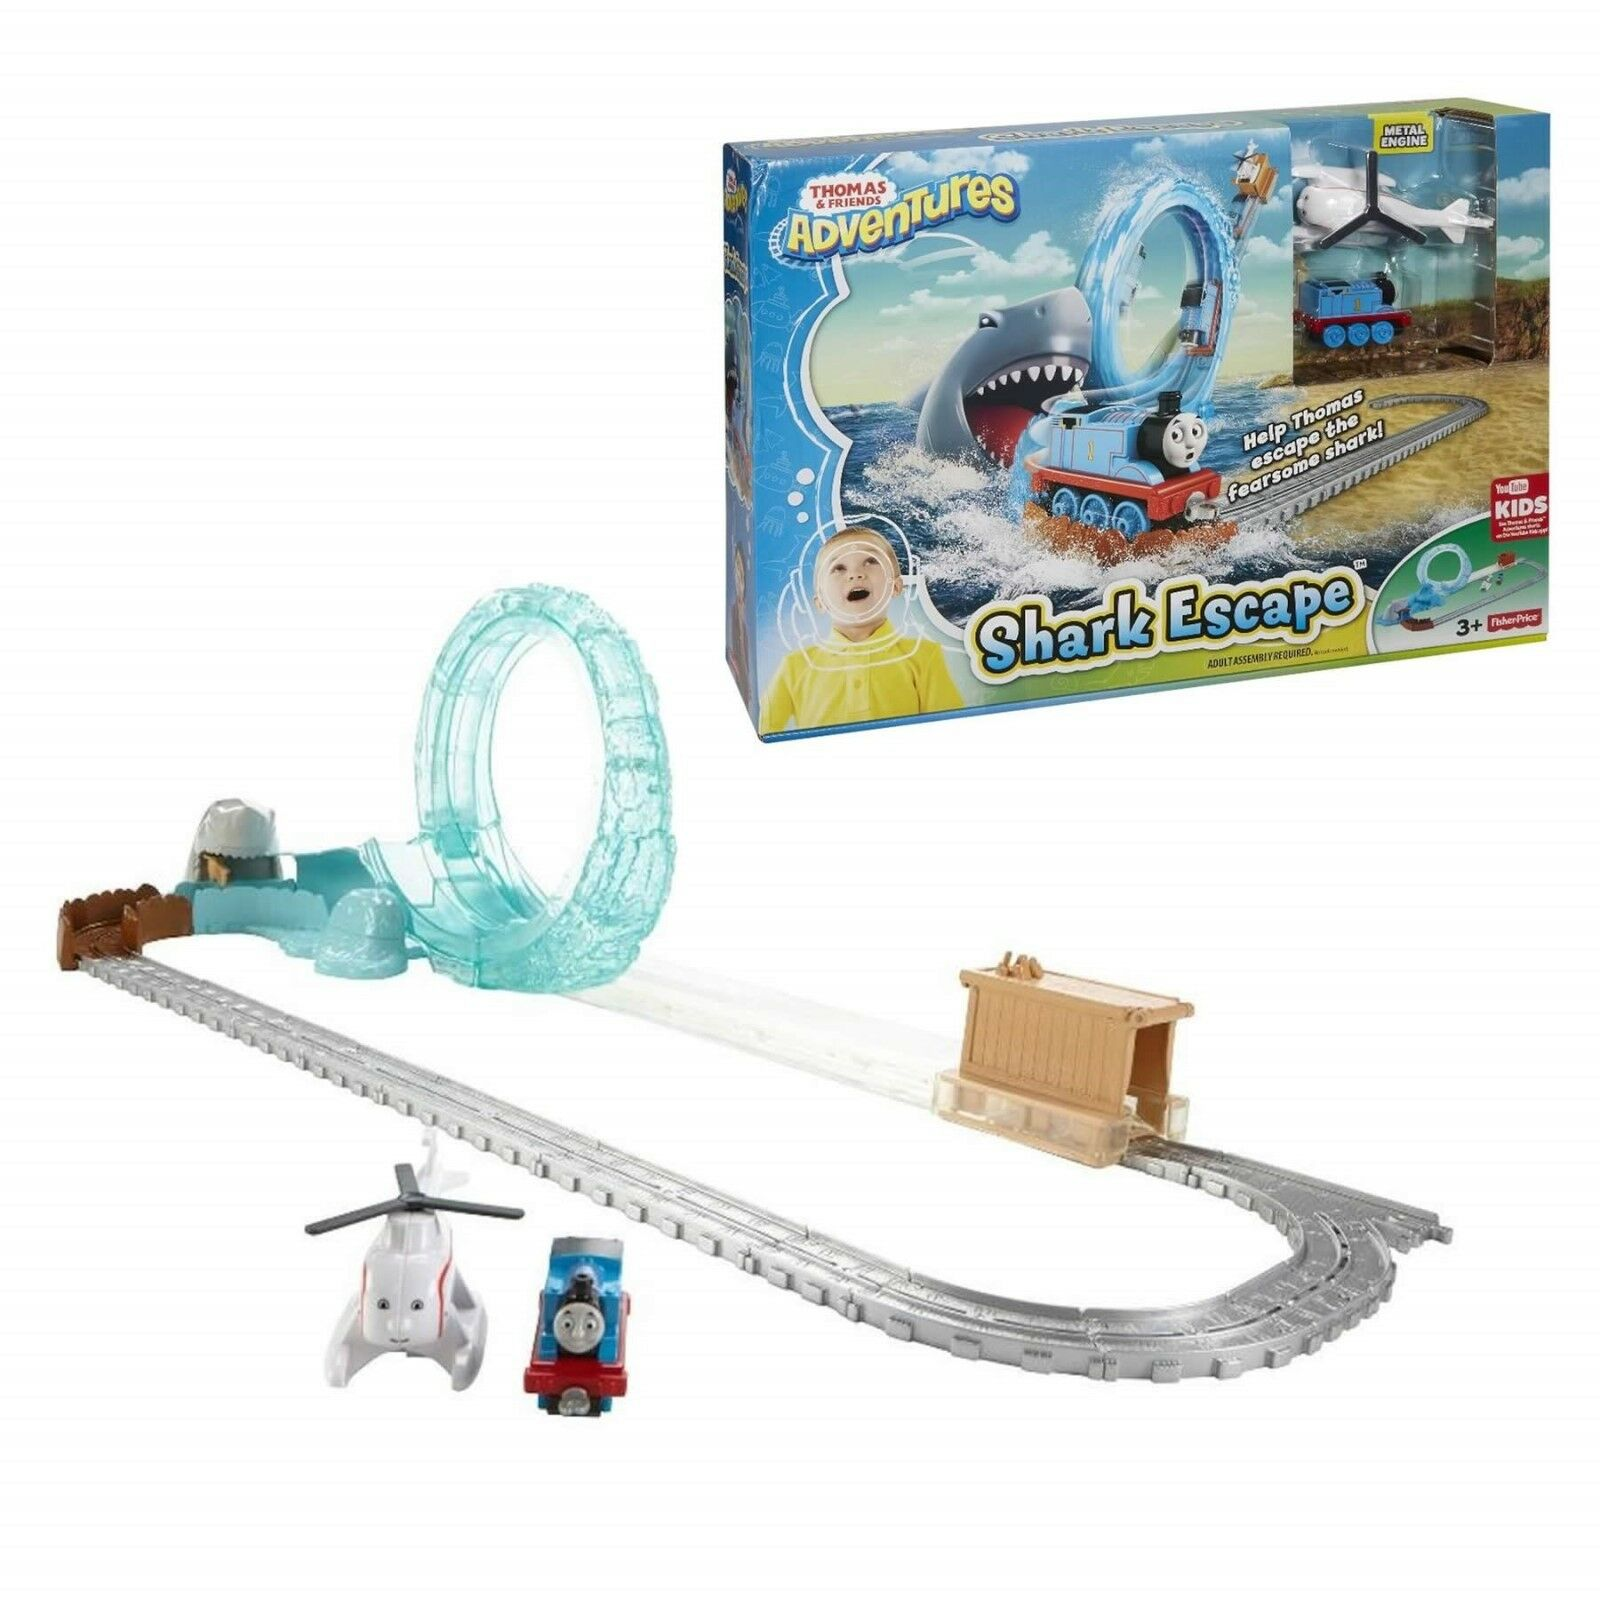 Thomas & Friends Adventures Toy Shark Escape Fisher Price Playset NEW BOXED